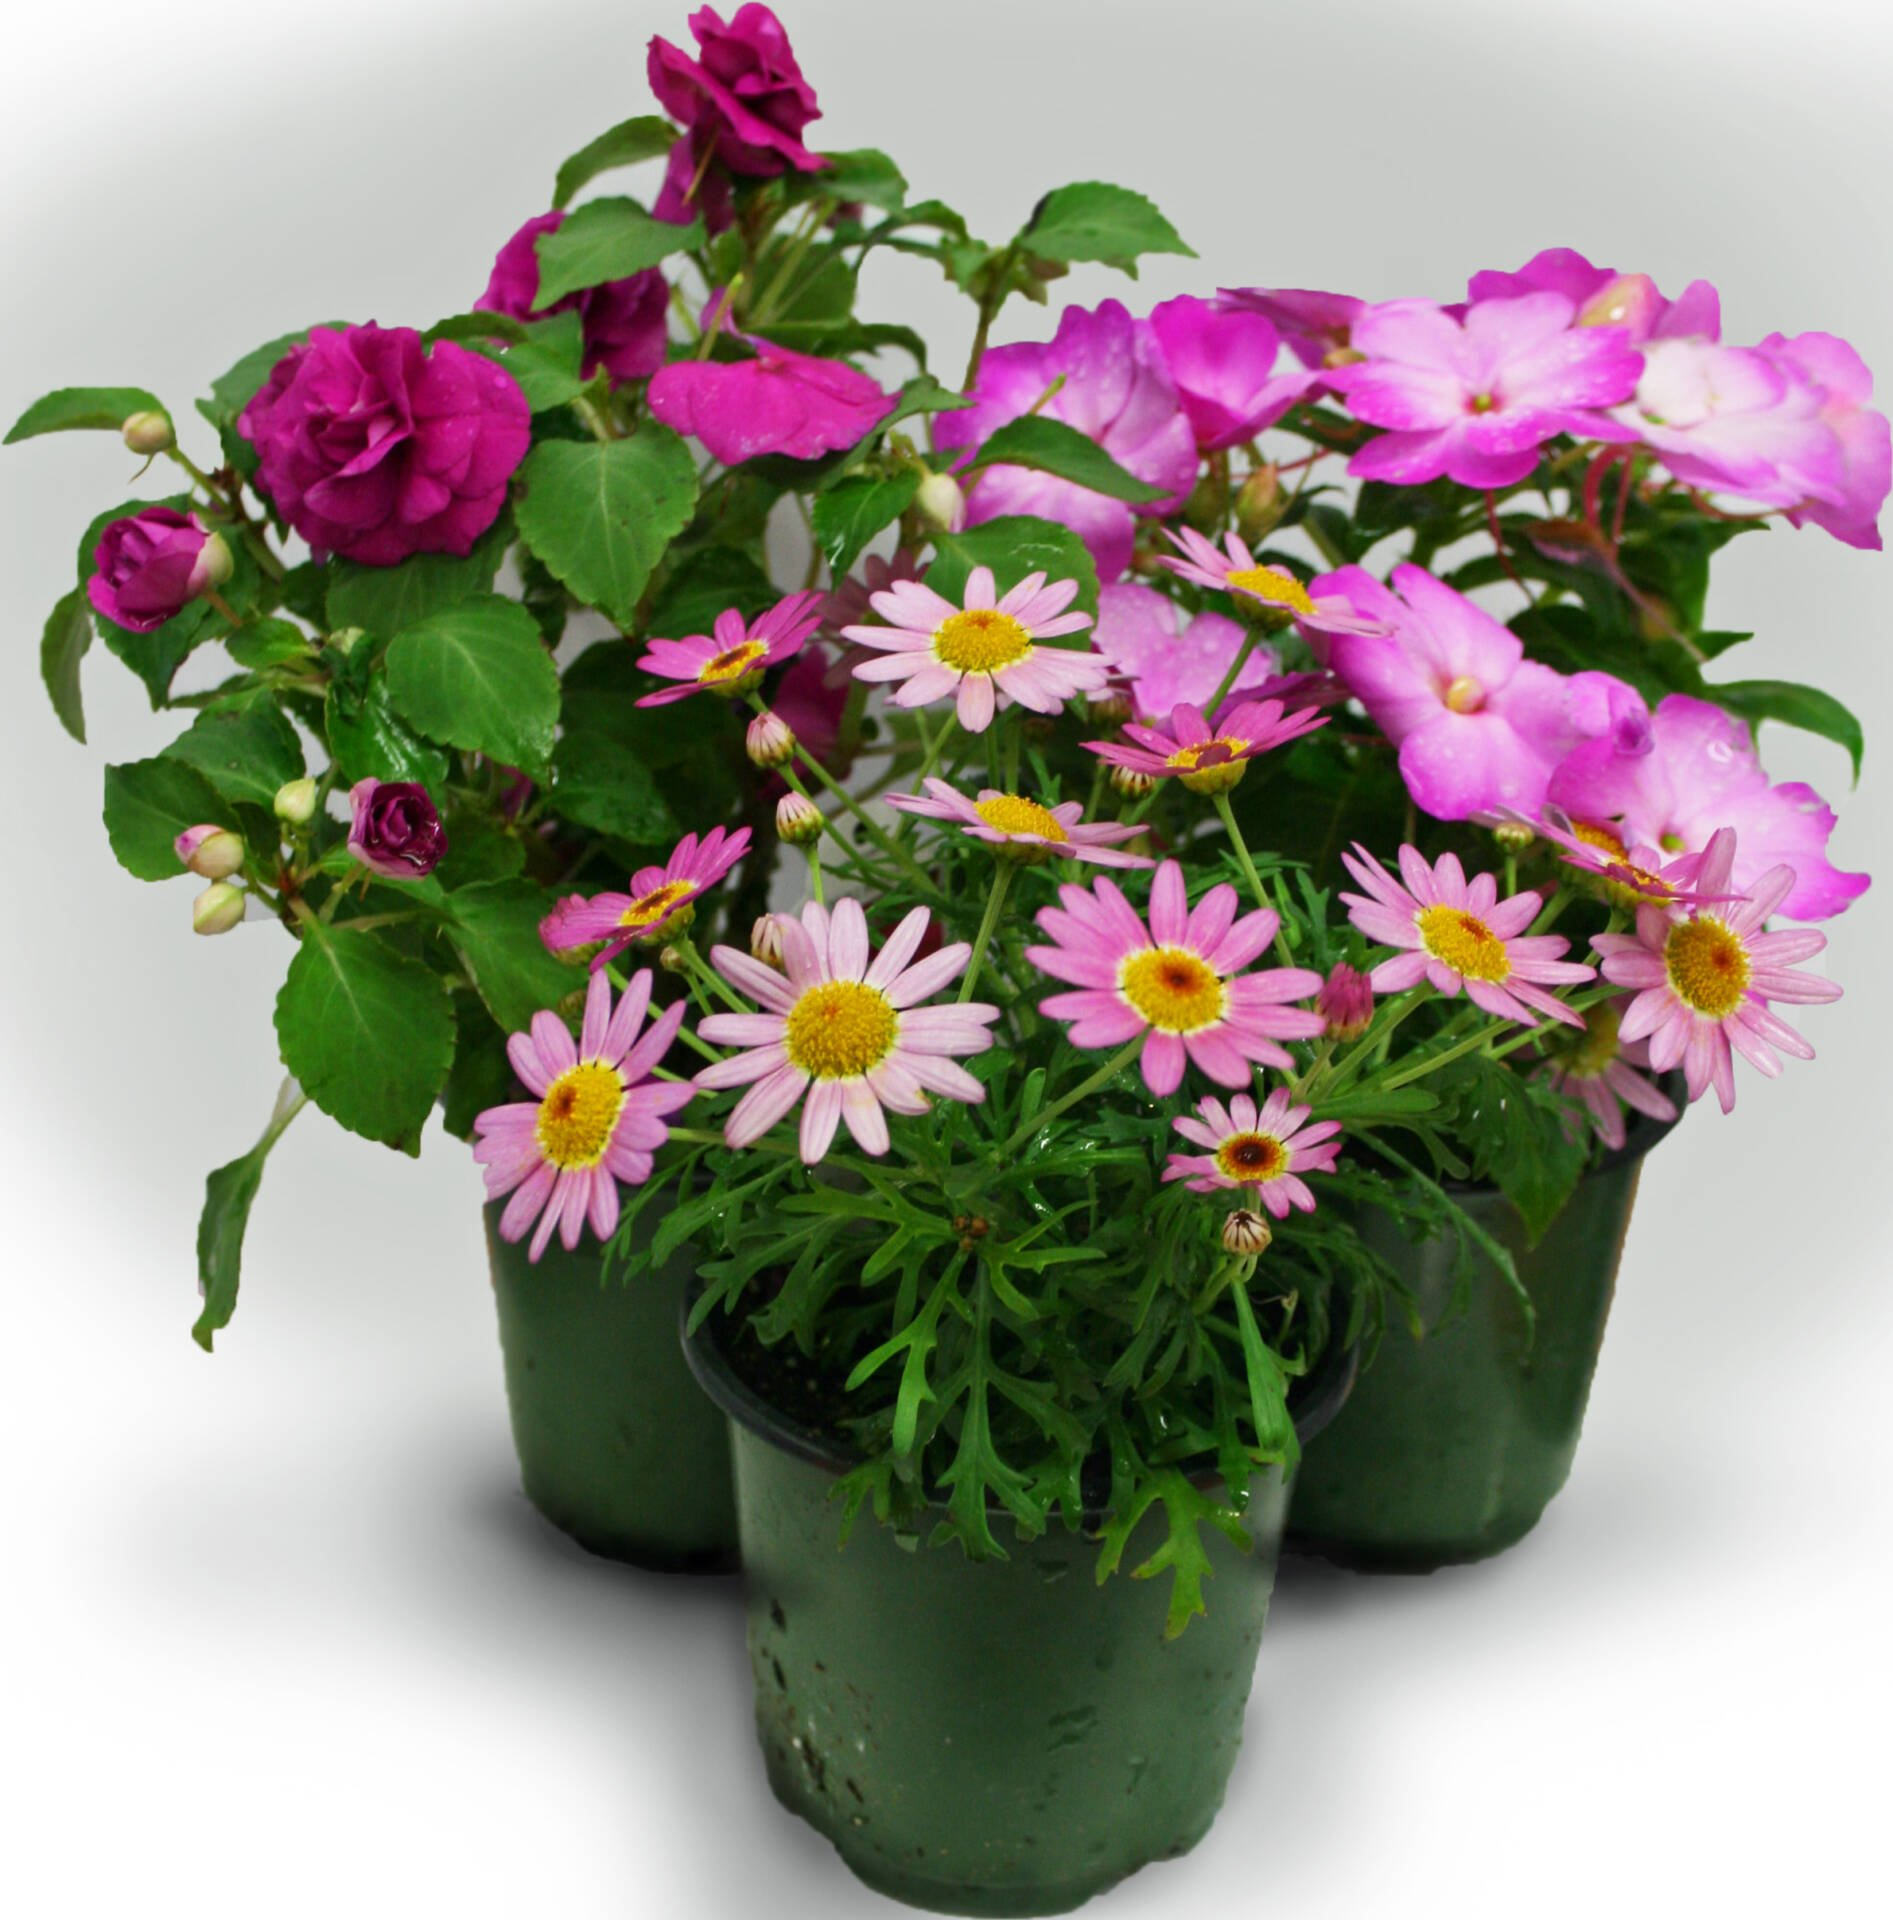 4.5 inch potted annuals at Flowerland